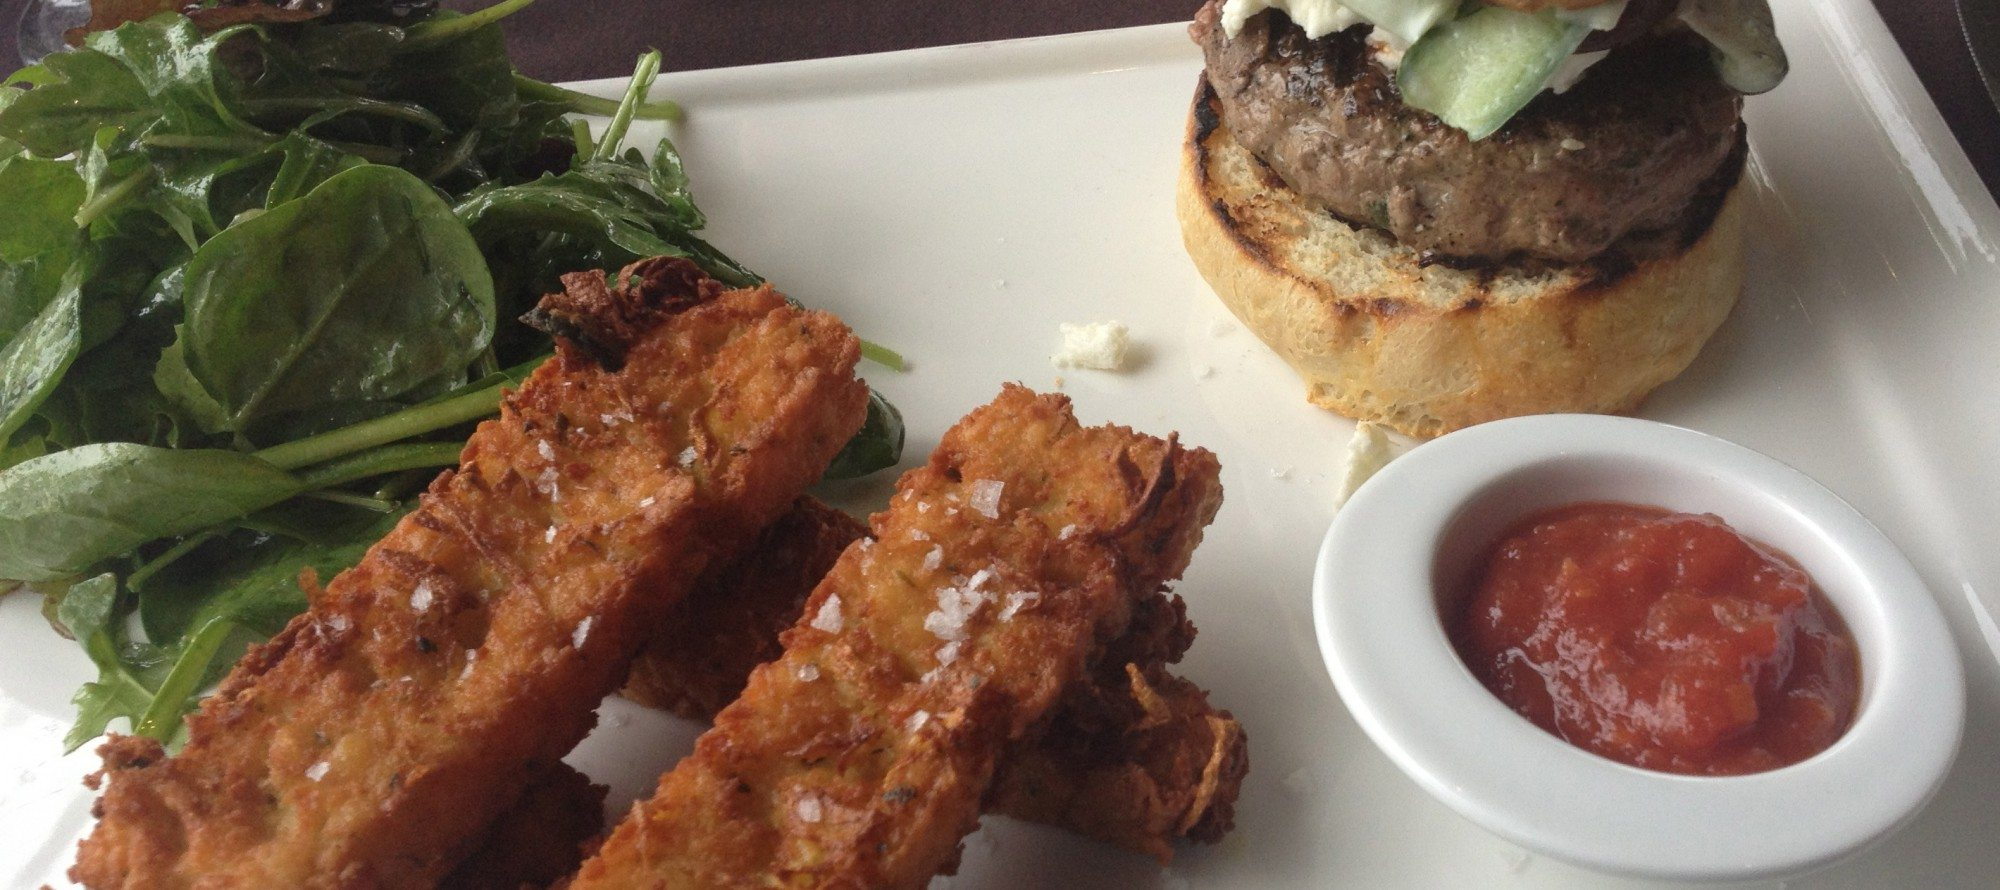 WEEKLY LUNCH PICK: Lamb burger with chickpea fries and trout two ways at Juniper